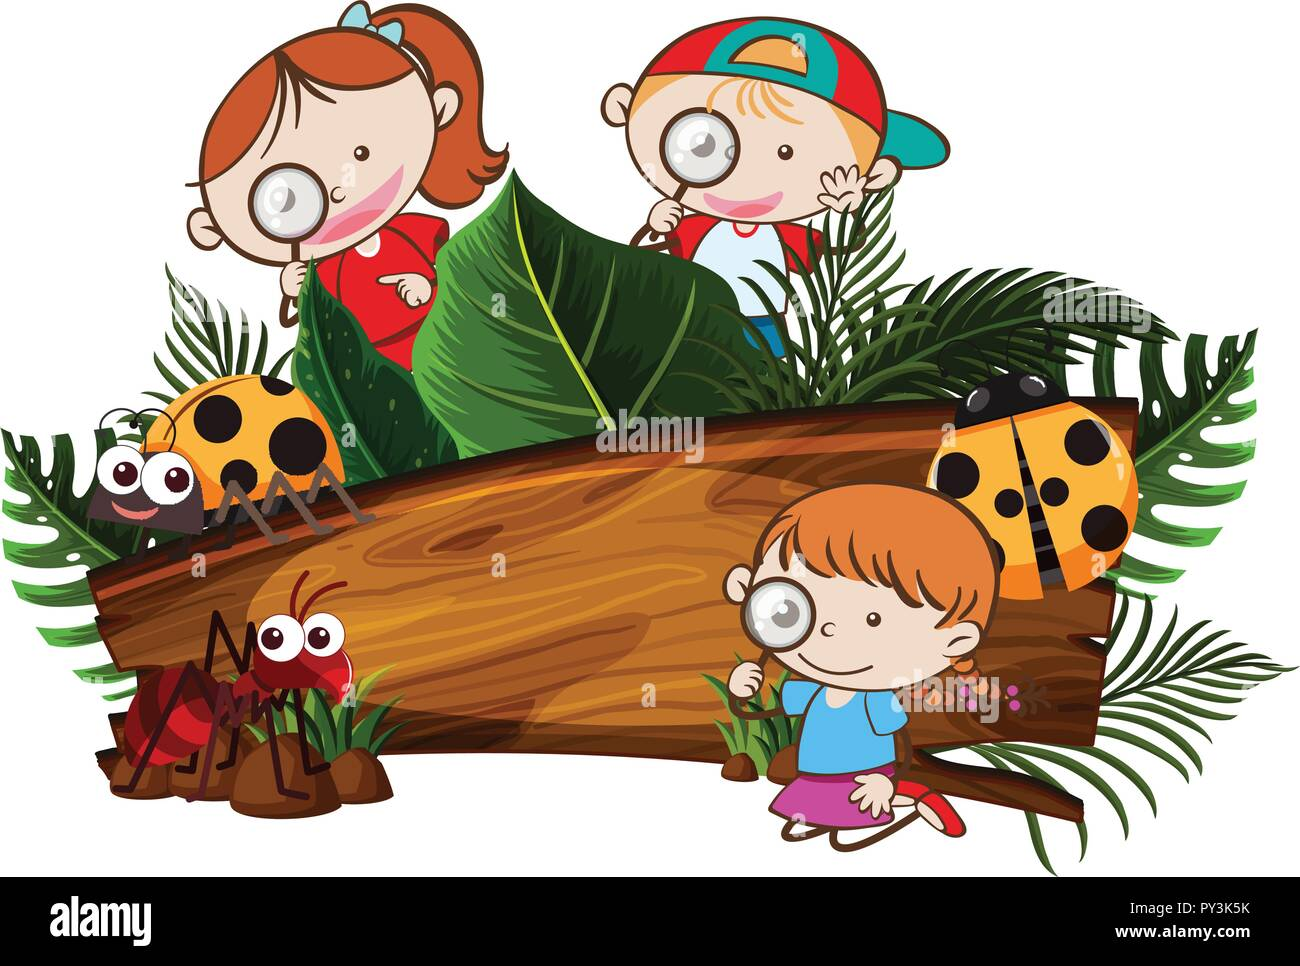 Kids Exploring the Nature Banner illustration - Stock Vector